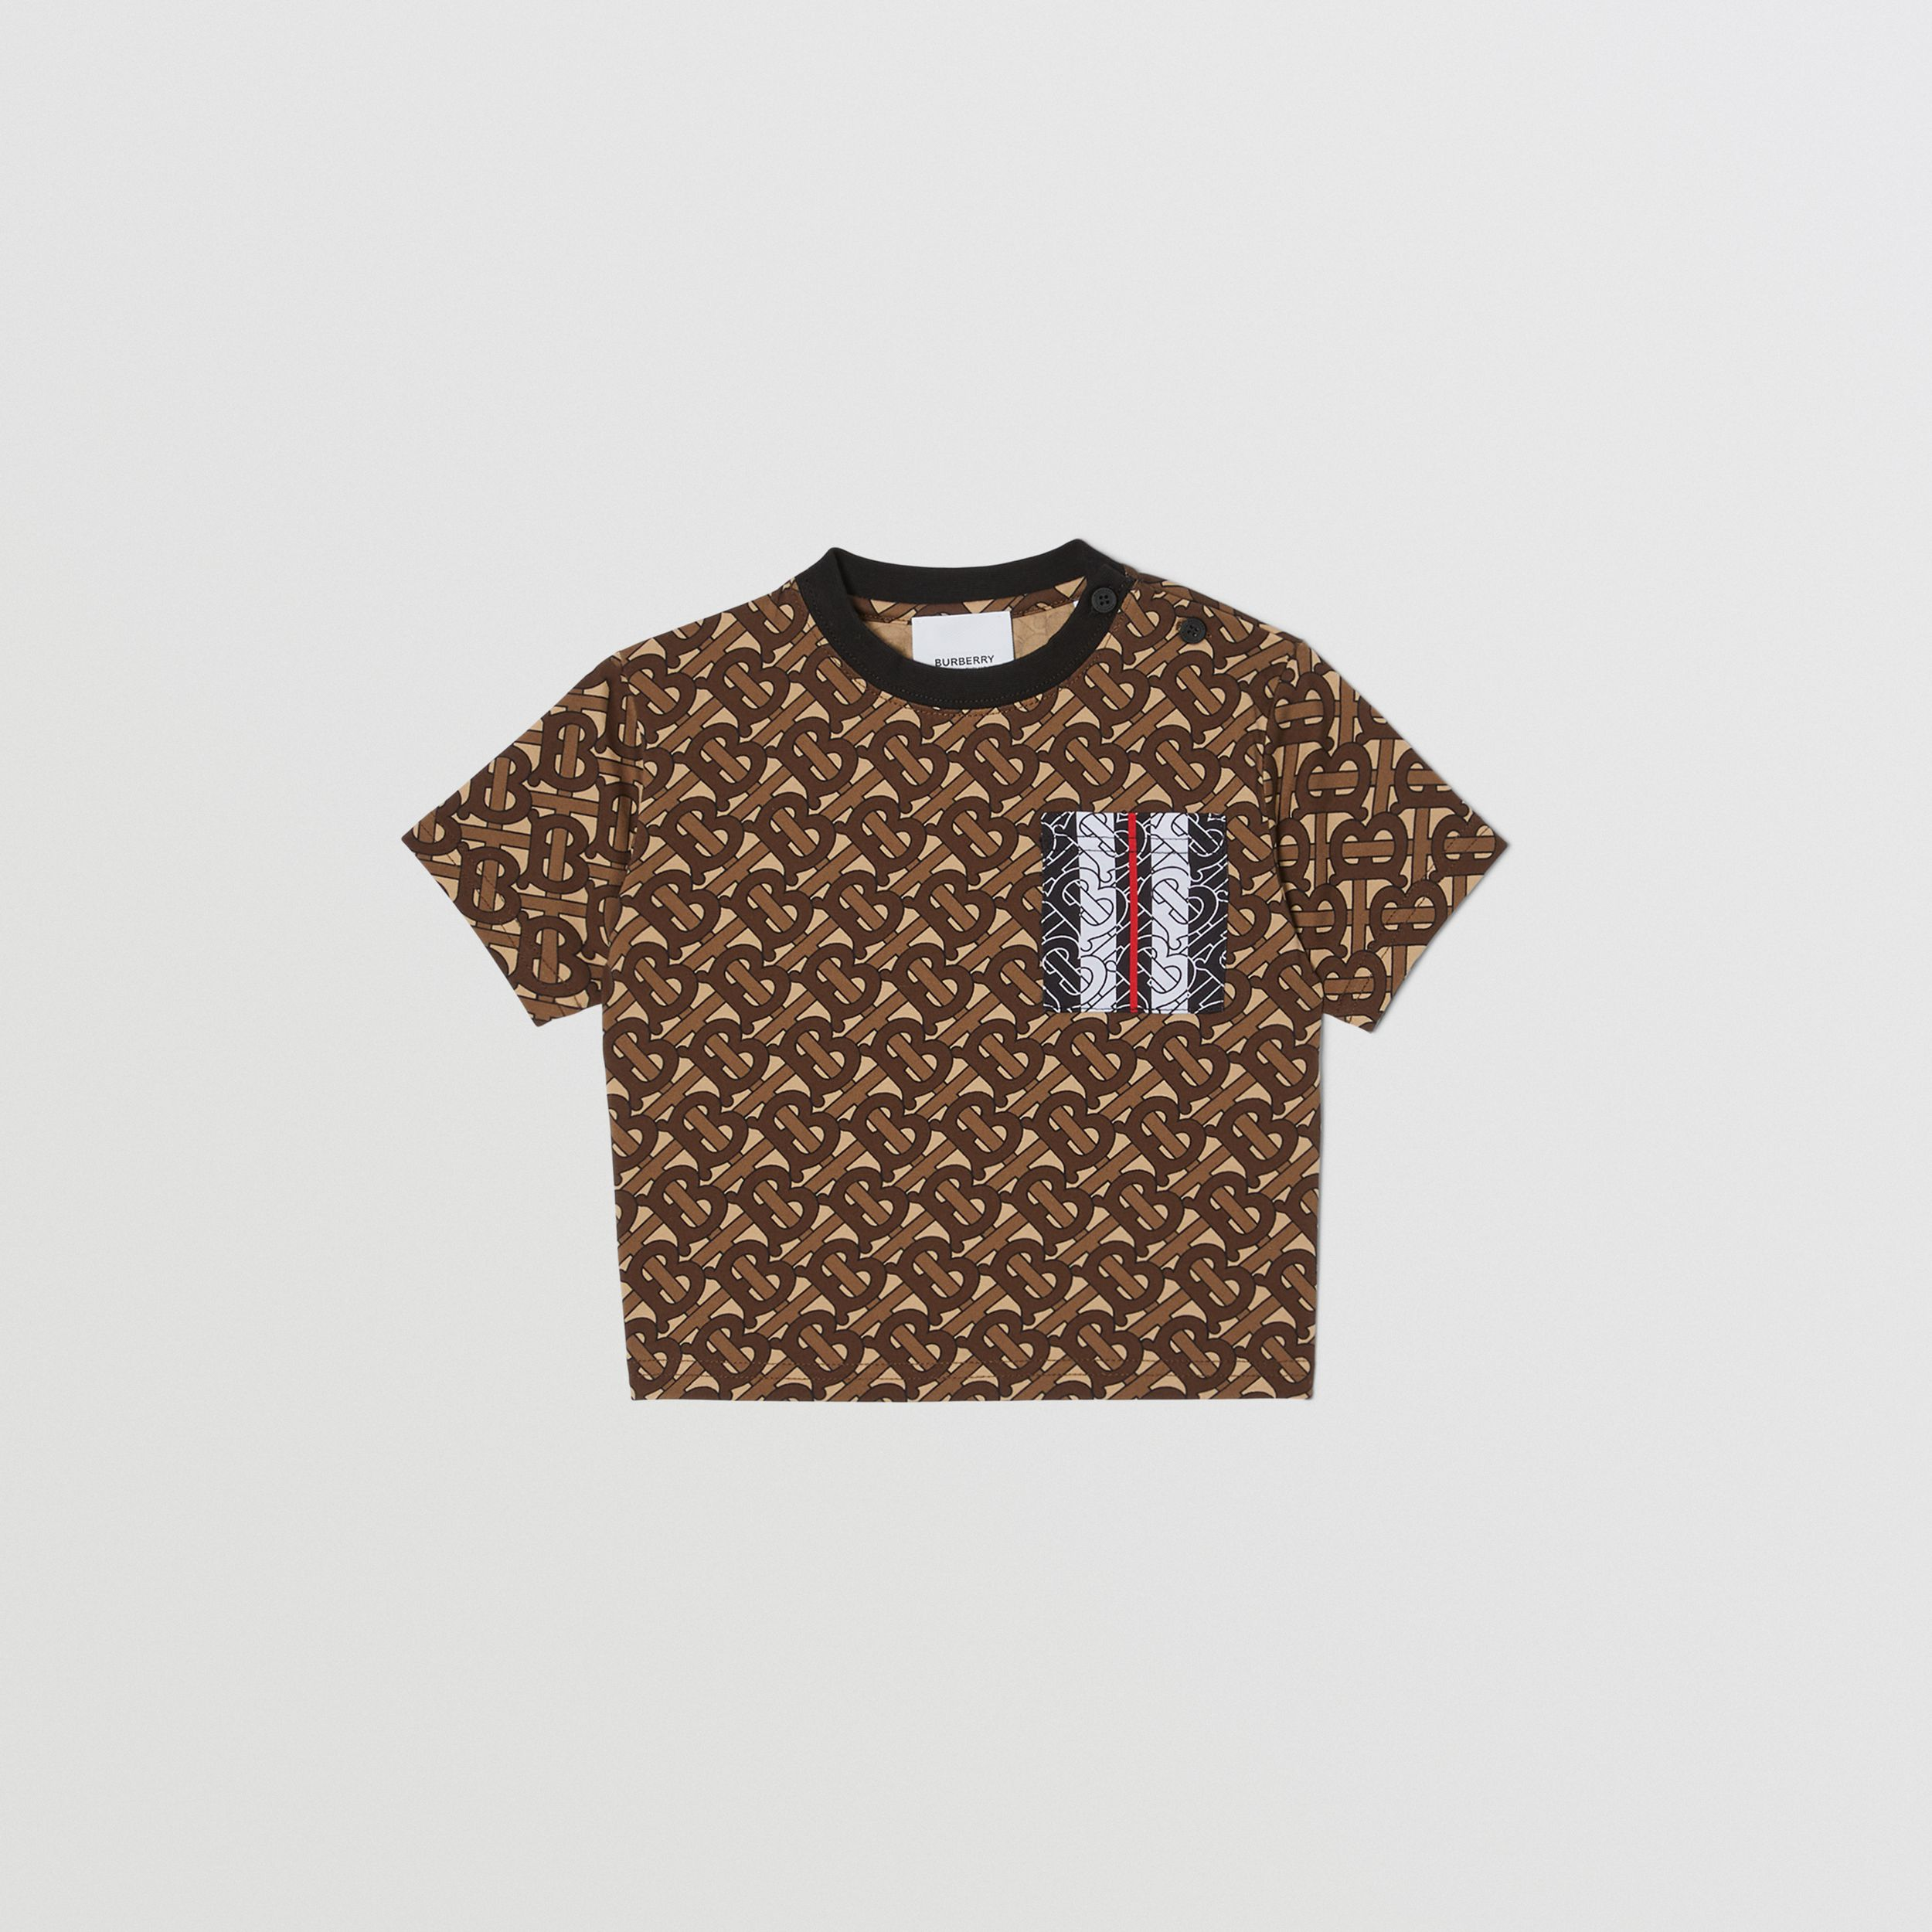 Monogram Stripe Print Cotton T-shirt in Bridle Brown - Children | Burberry Canada - 1